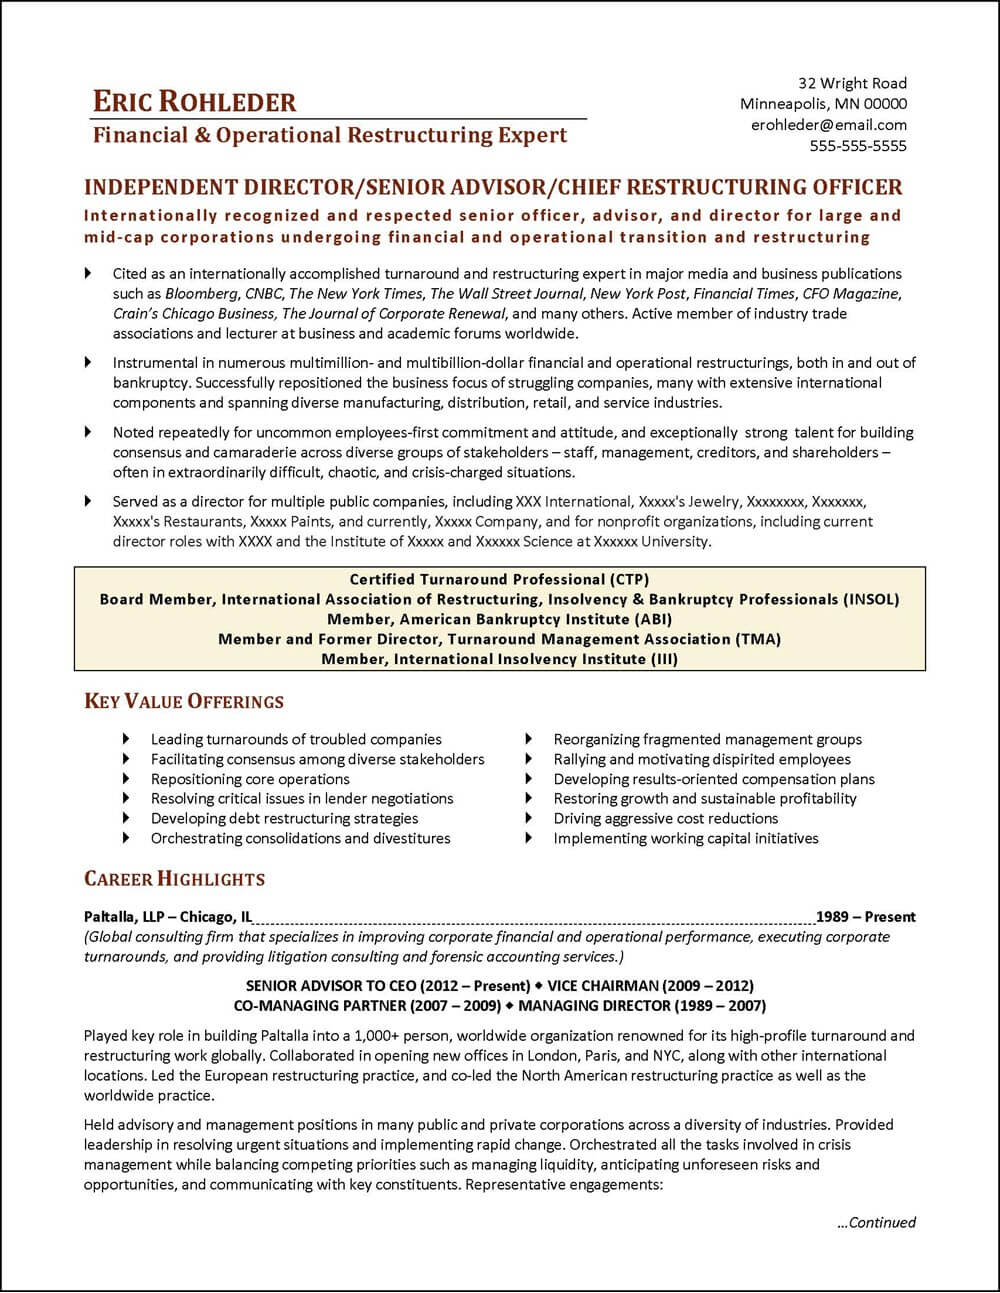 Chief Restructuring Officer Executive Resume - page 1